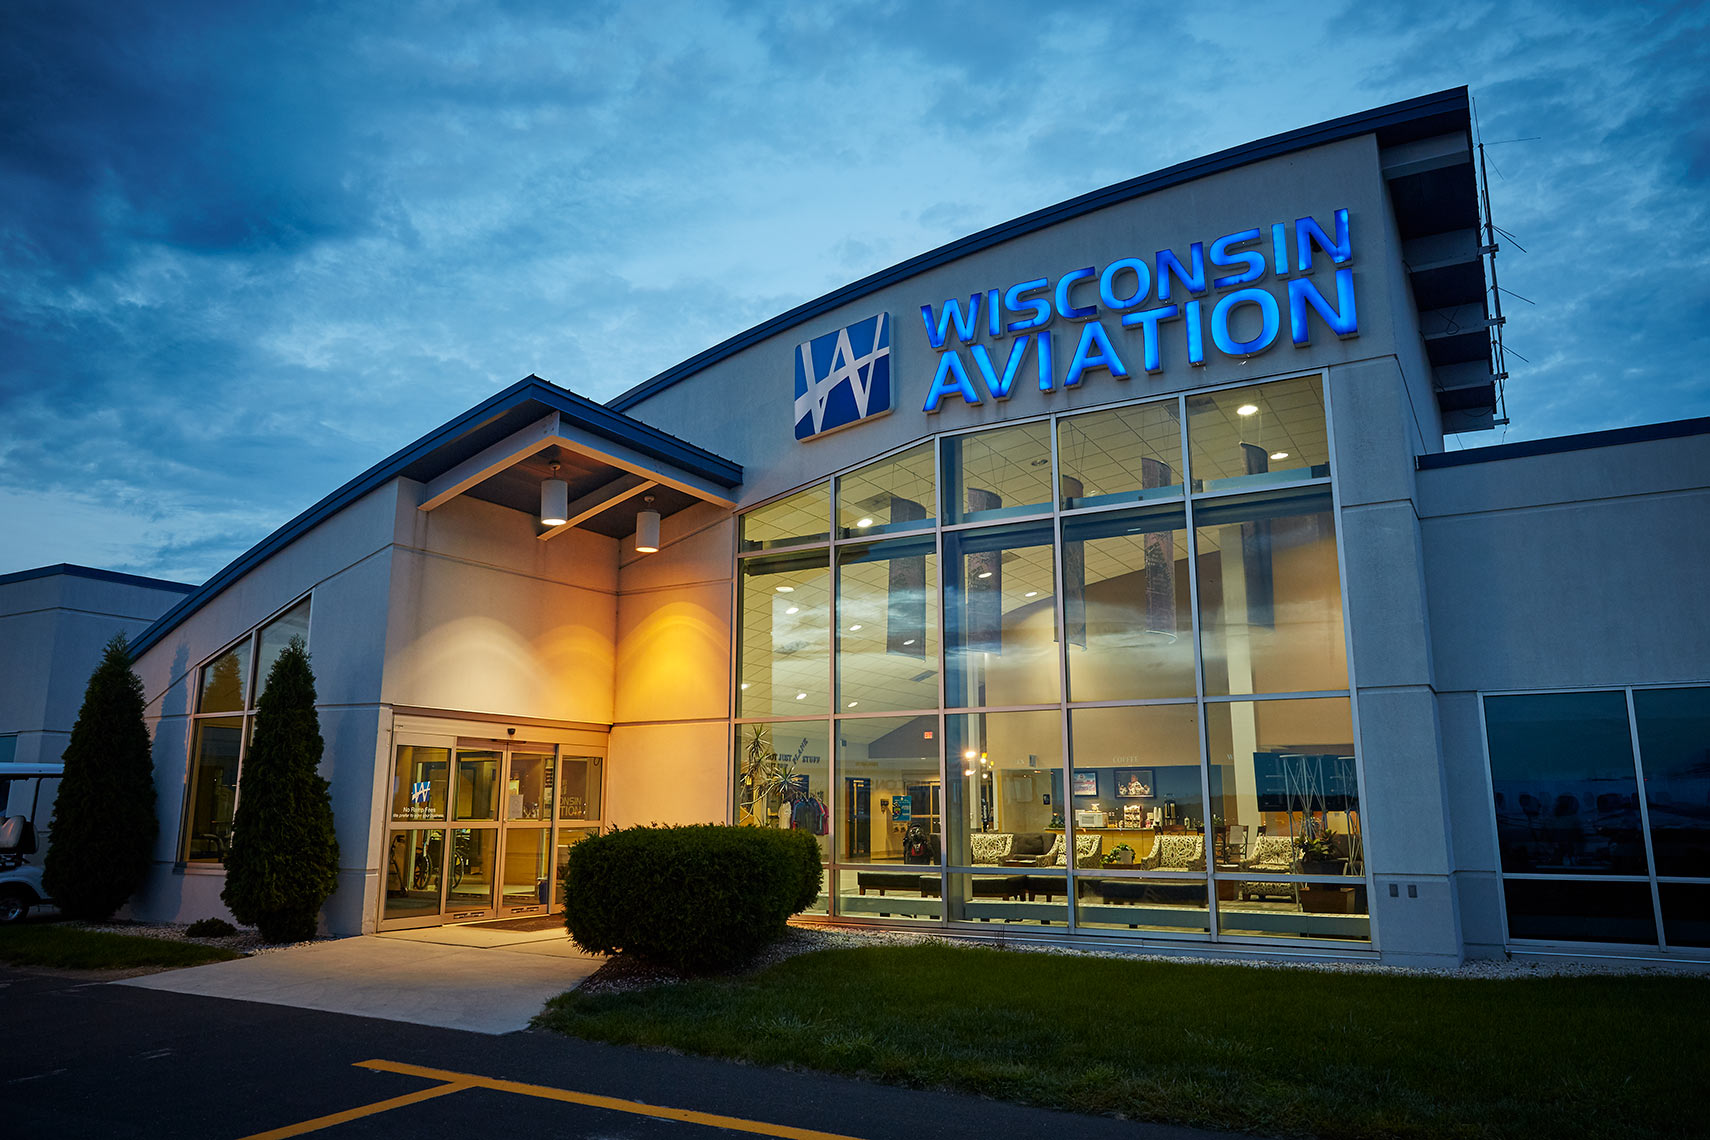 WISCONSIN AVIATIONKMSN